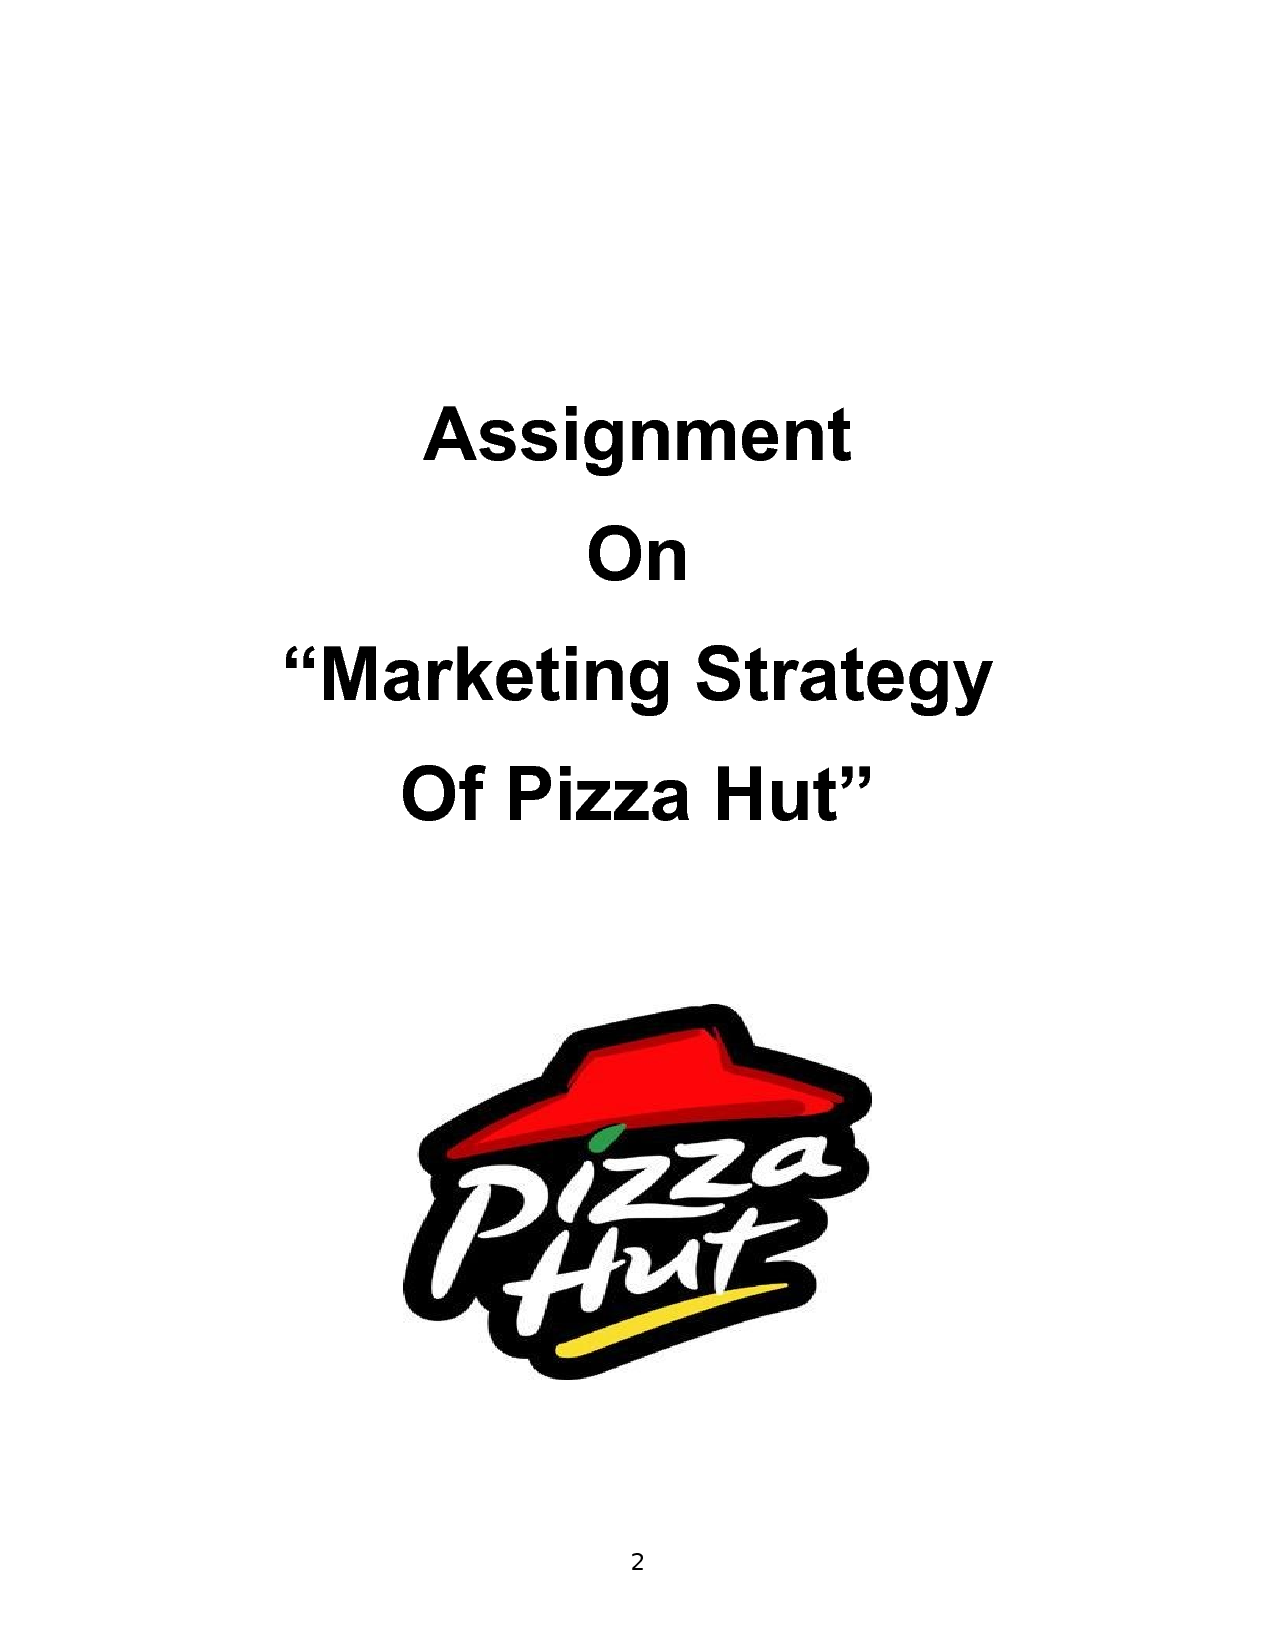 marketing strategy by pizza hut essay Pizza hut is the world's largest pizza chain with over 12,500 restaurants across 91 countries in india, pizza hut has 137 restaurants across 36 cities, including delhi, mumbai, bangalore, chennai, kolkata, hyderabad, pune, and chandigarh amongst others.